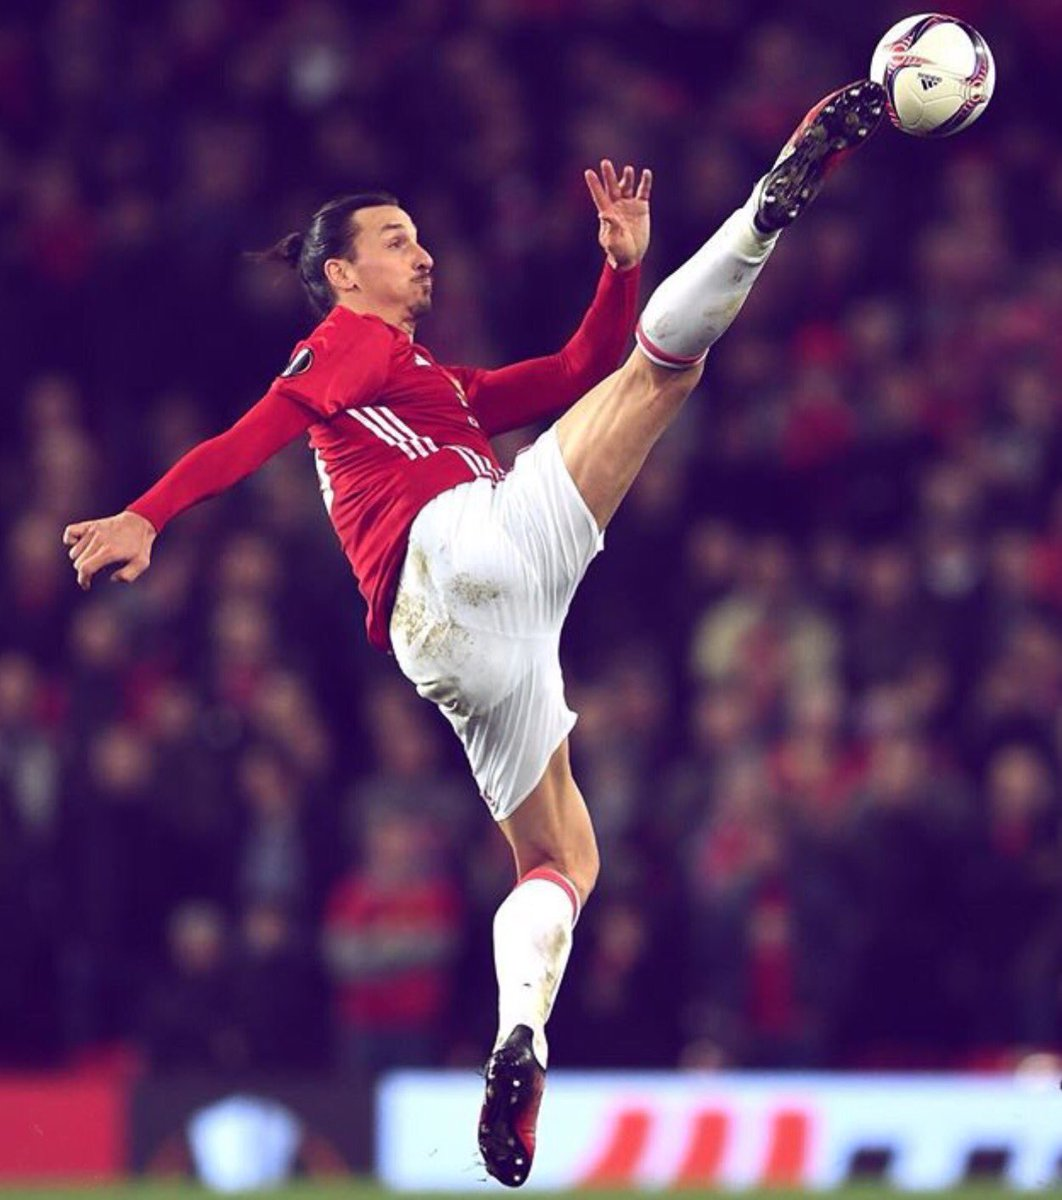 Manchester United will help Zlatan Ibrahimovic in his recovery from the ACL injury but they won&#39;t extend his contract (Mirror) #MUFC #zlatan <br>http://pic.twitter.com/4RFmqS4dxT